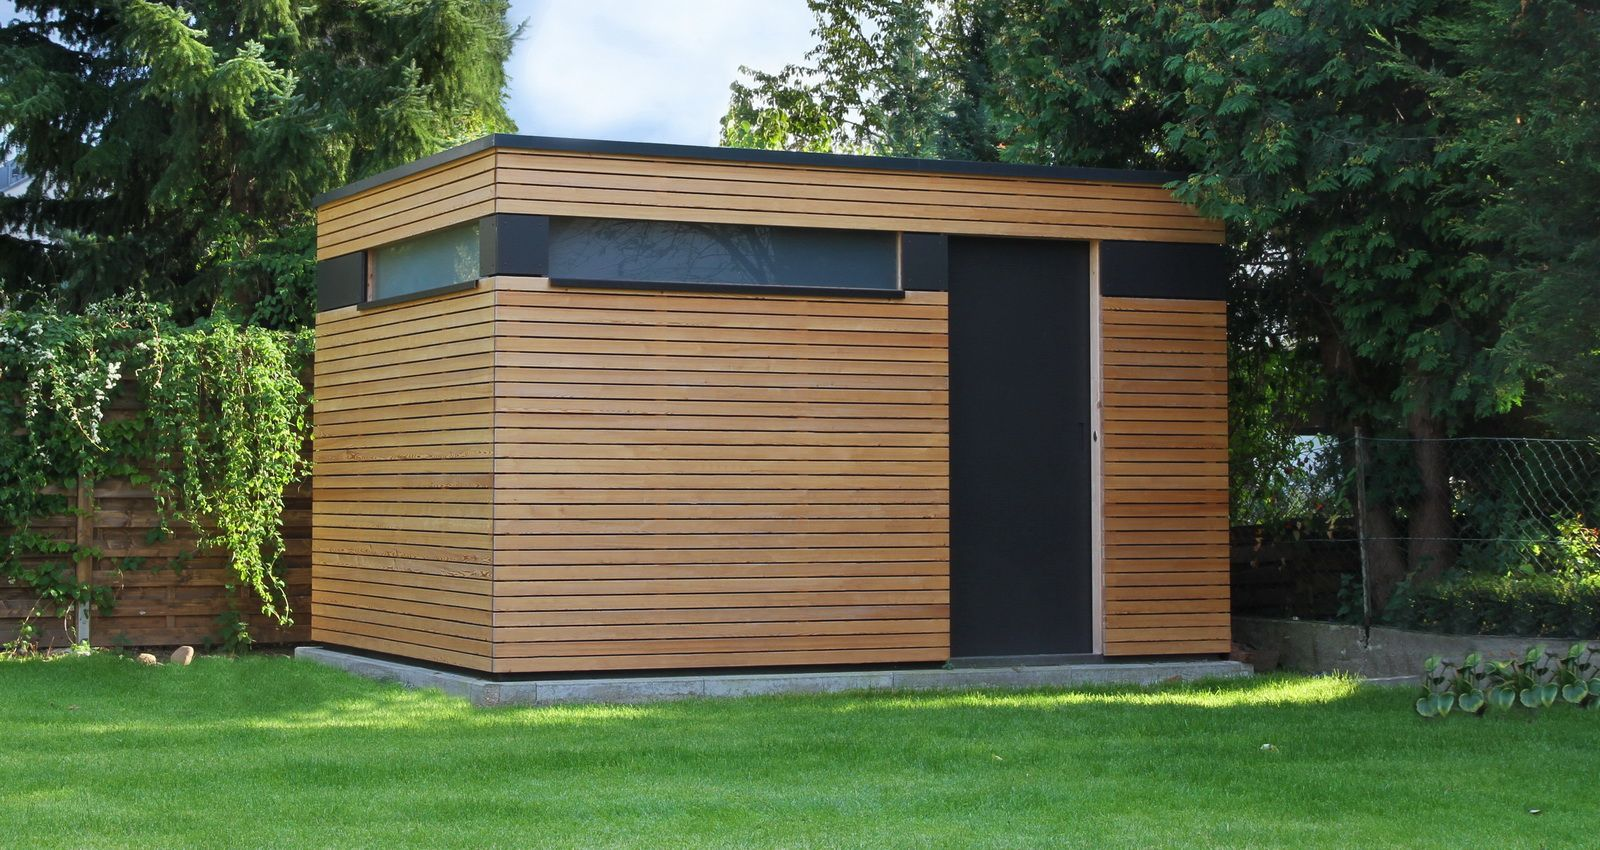 Wooden garden shed in contemporary design with small